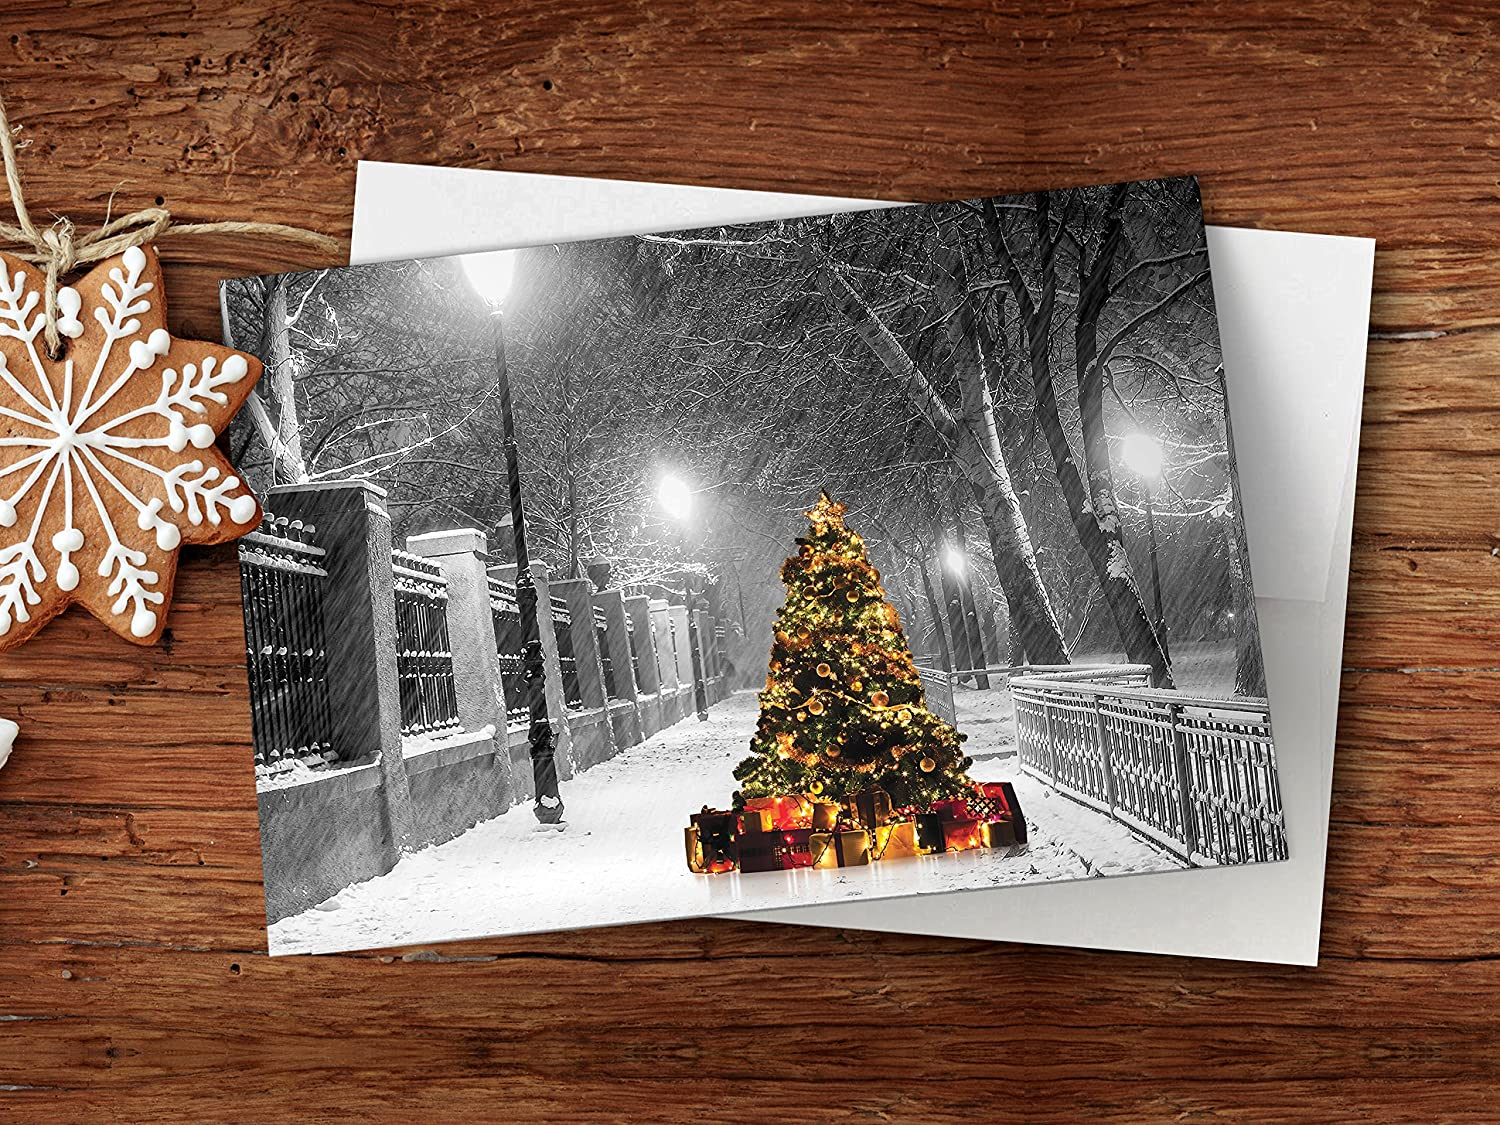 Set of 18 Cards /& Envelopes Lighted Tree in the Snow Seasons Greetings Cards. One Jade Lane Heavy Stock Christmas Cards 5x7 Holiday Cards